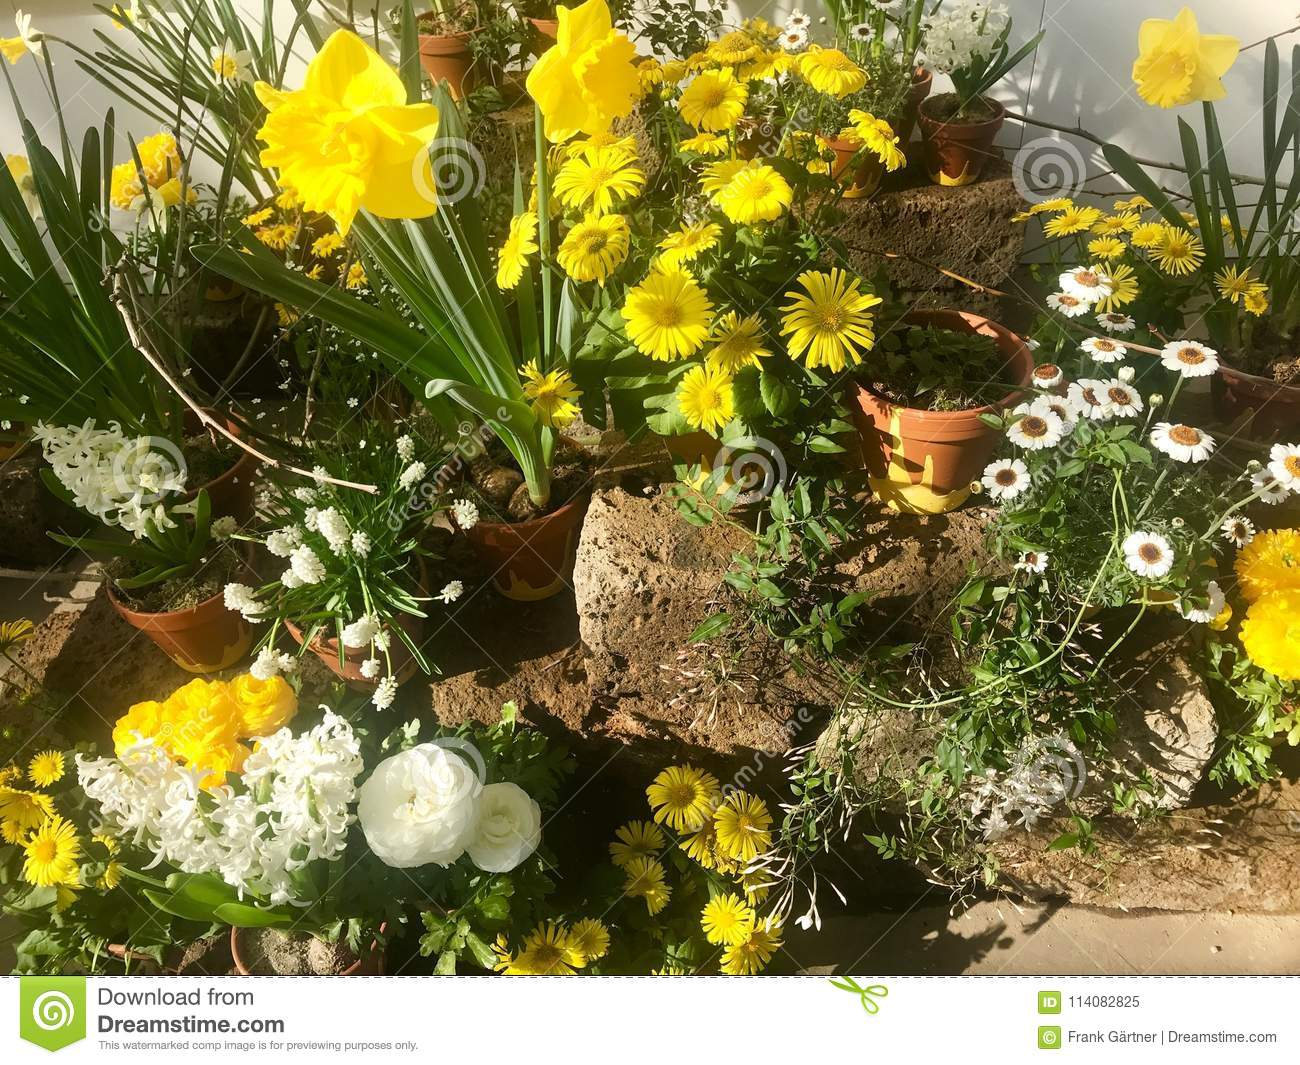 Spring garden flower arrangement in pots stock image image of variety of spring garden flower arrangement in white and yellow colors in pots sunlit on display in street shop mightylinksfo